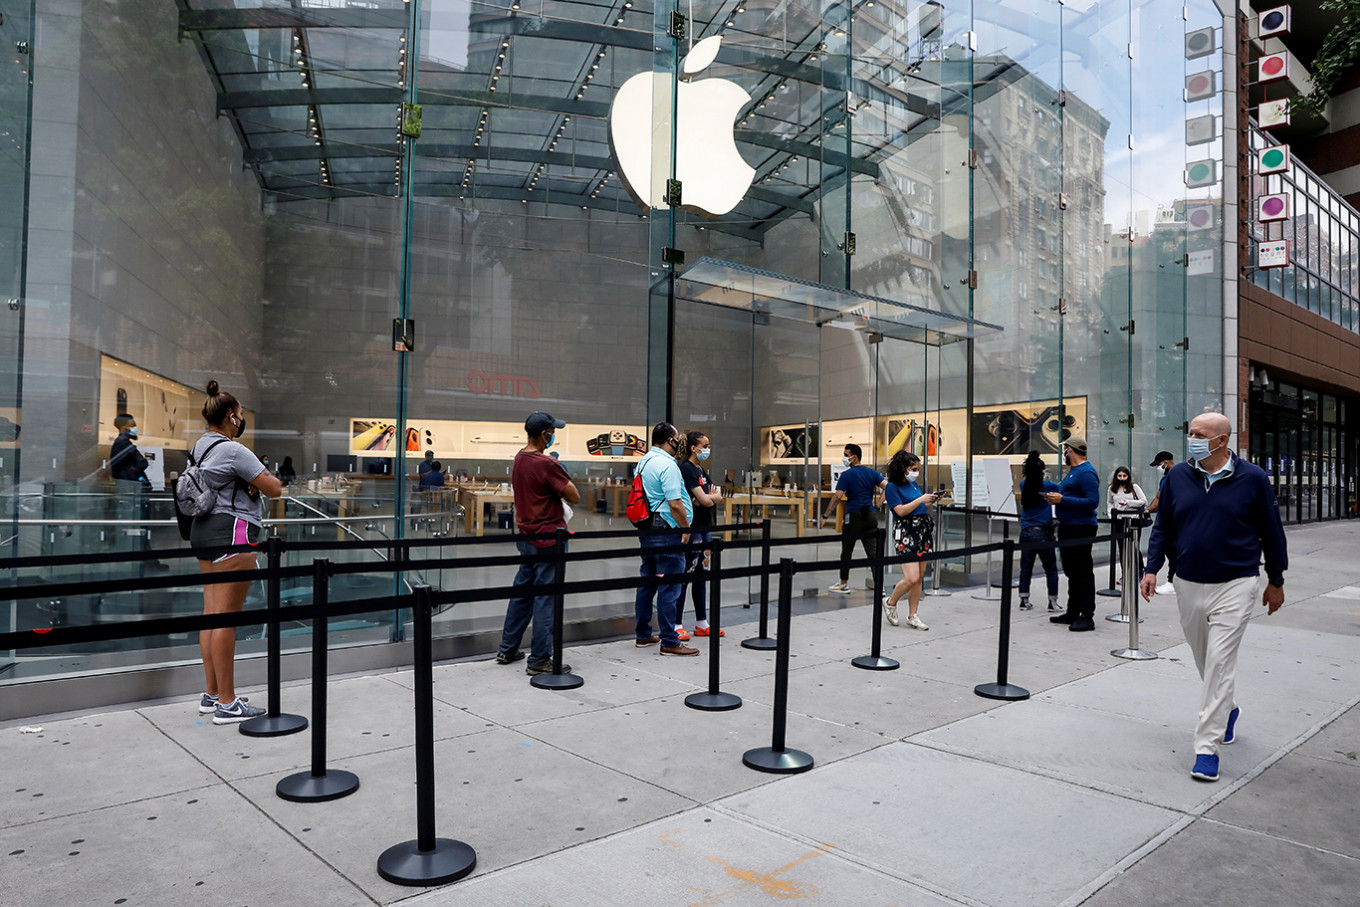 Apple to shut some US stores again due to rising COVID-19 cases